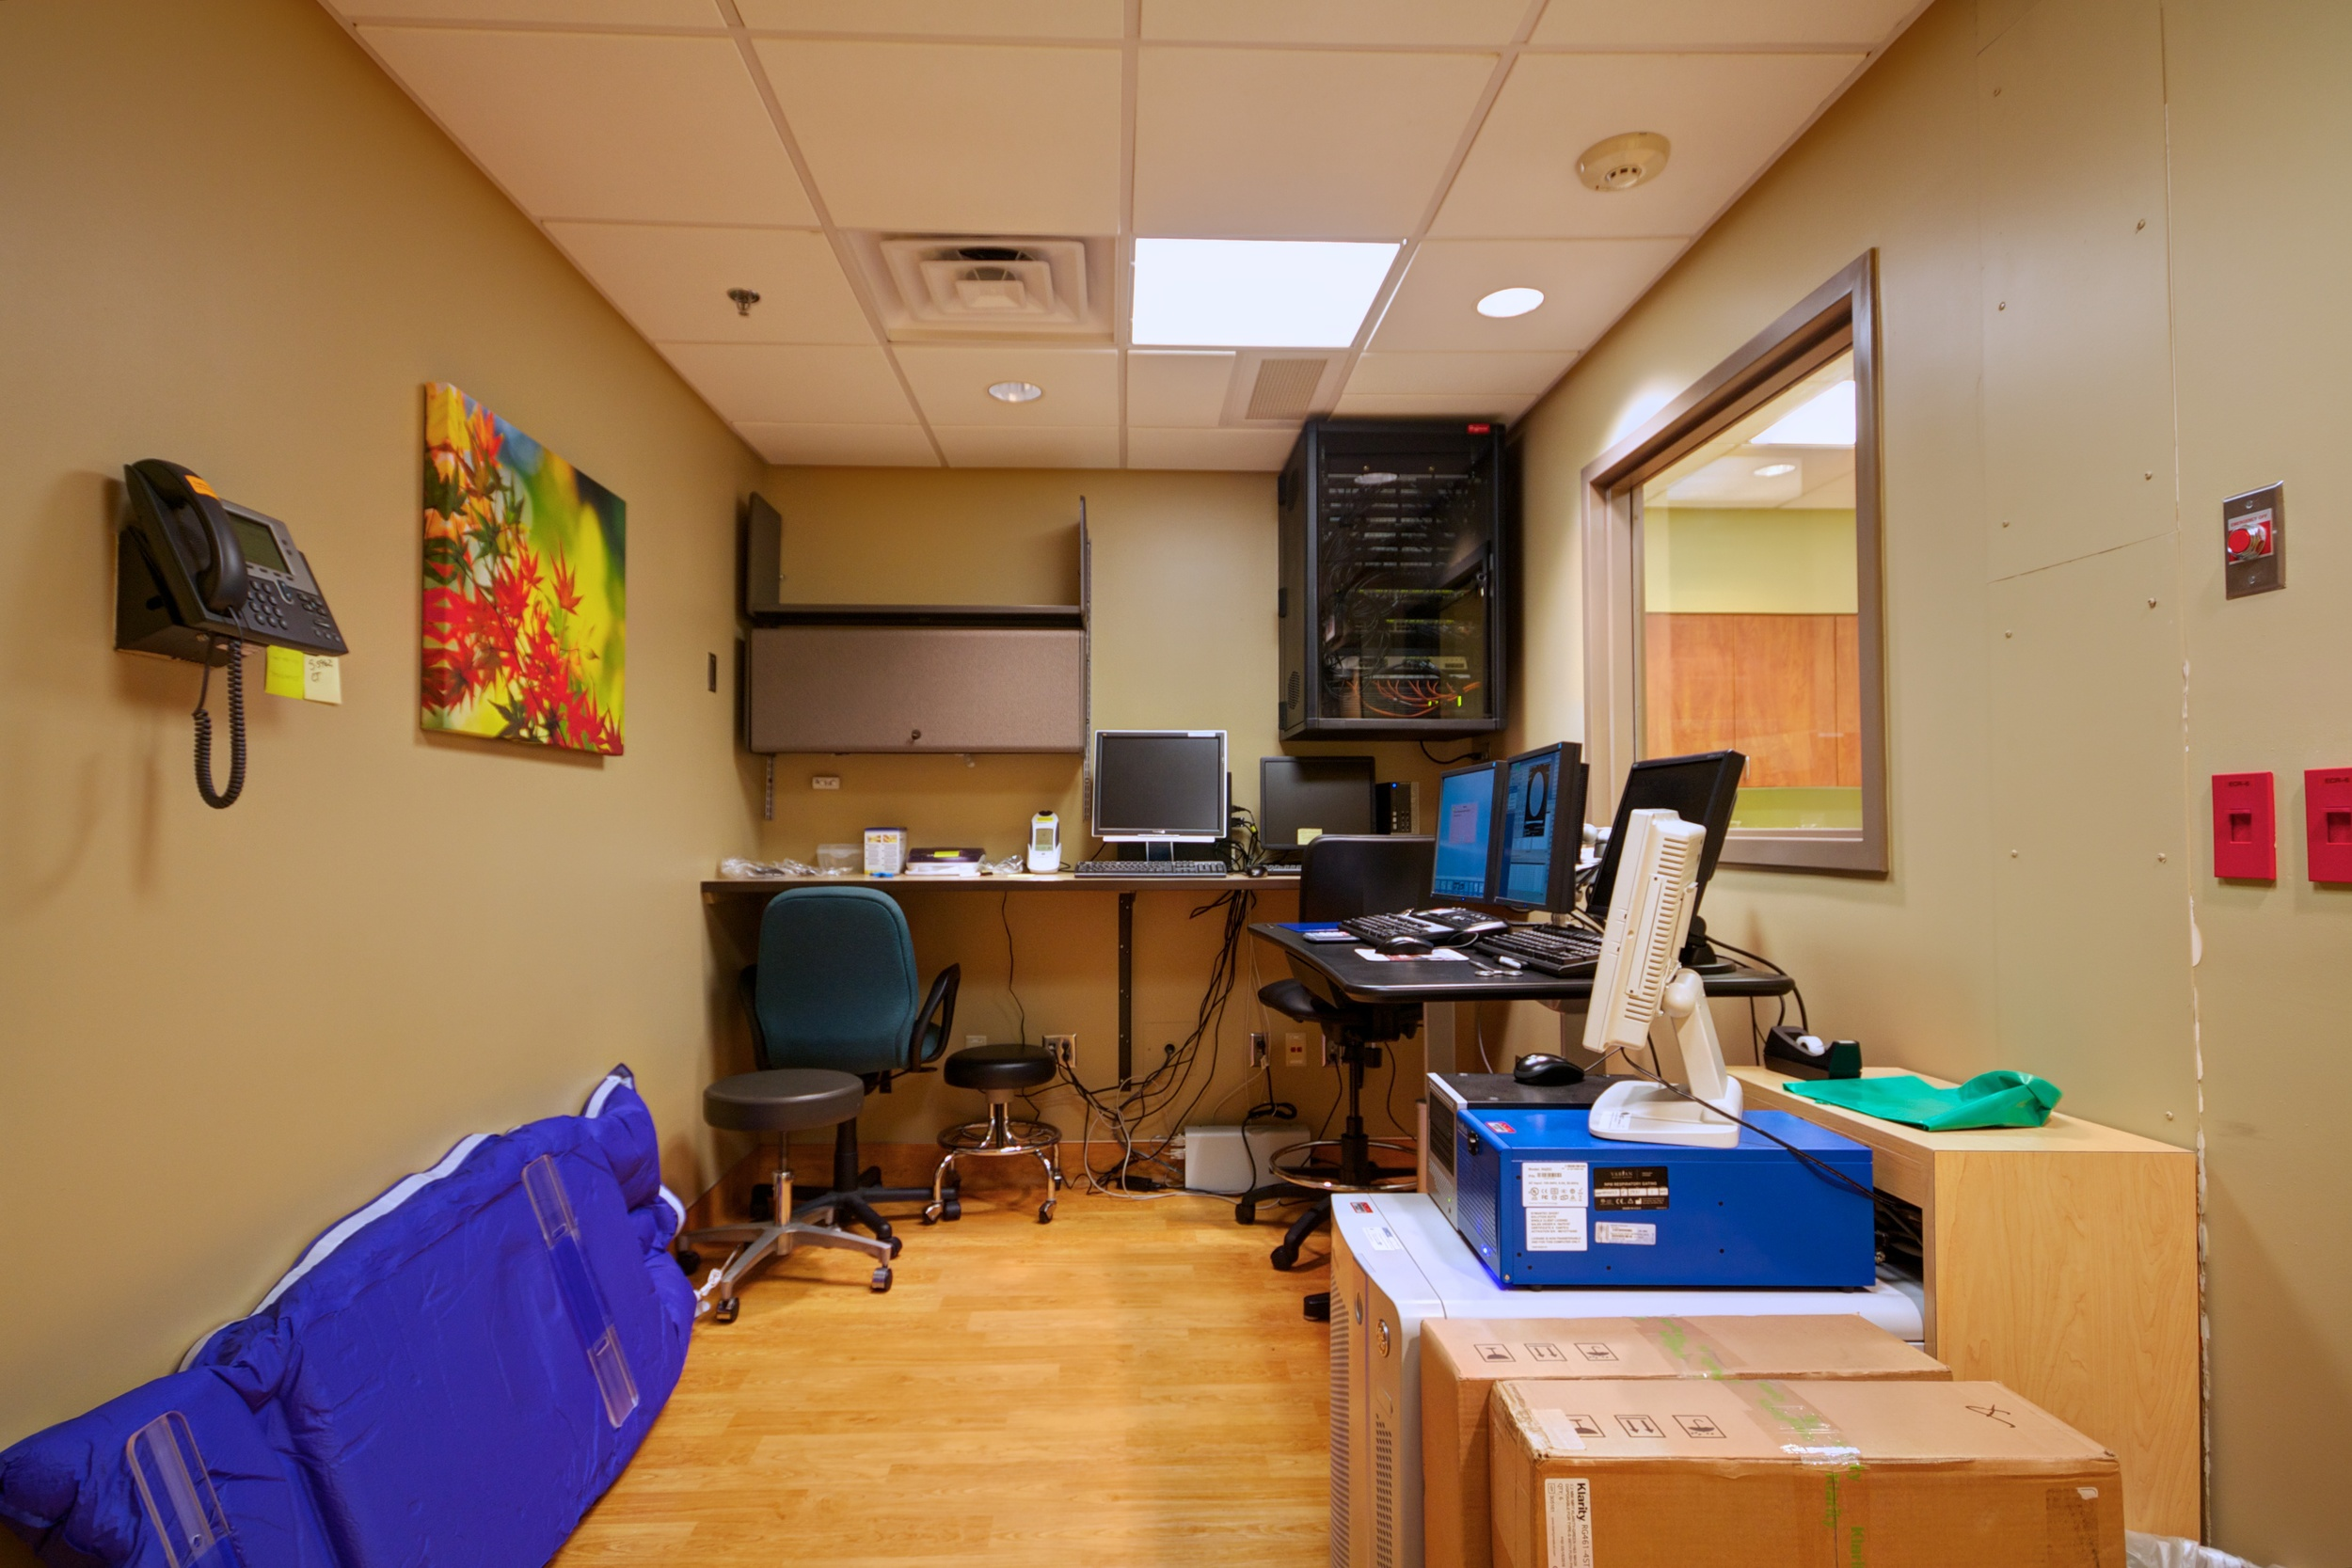 MH-UCH Cancer Center PET-CT Scan Room Remodel (4).jpg